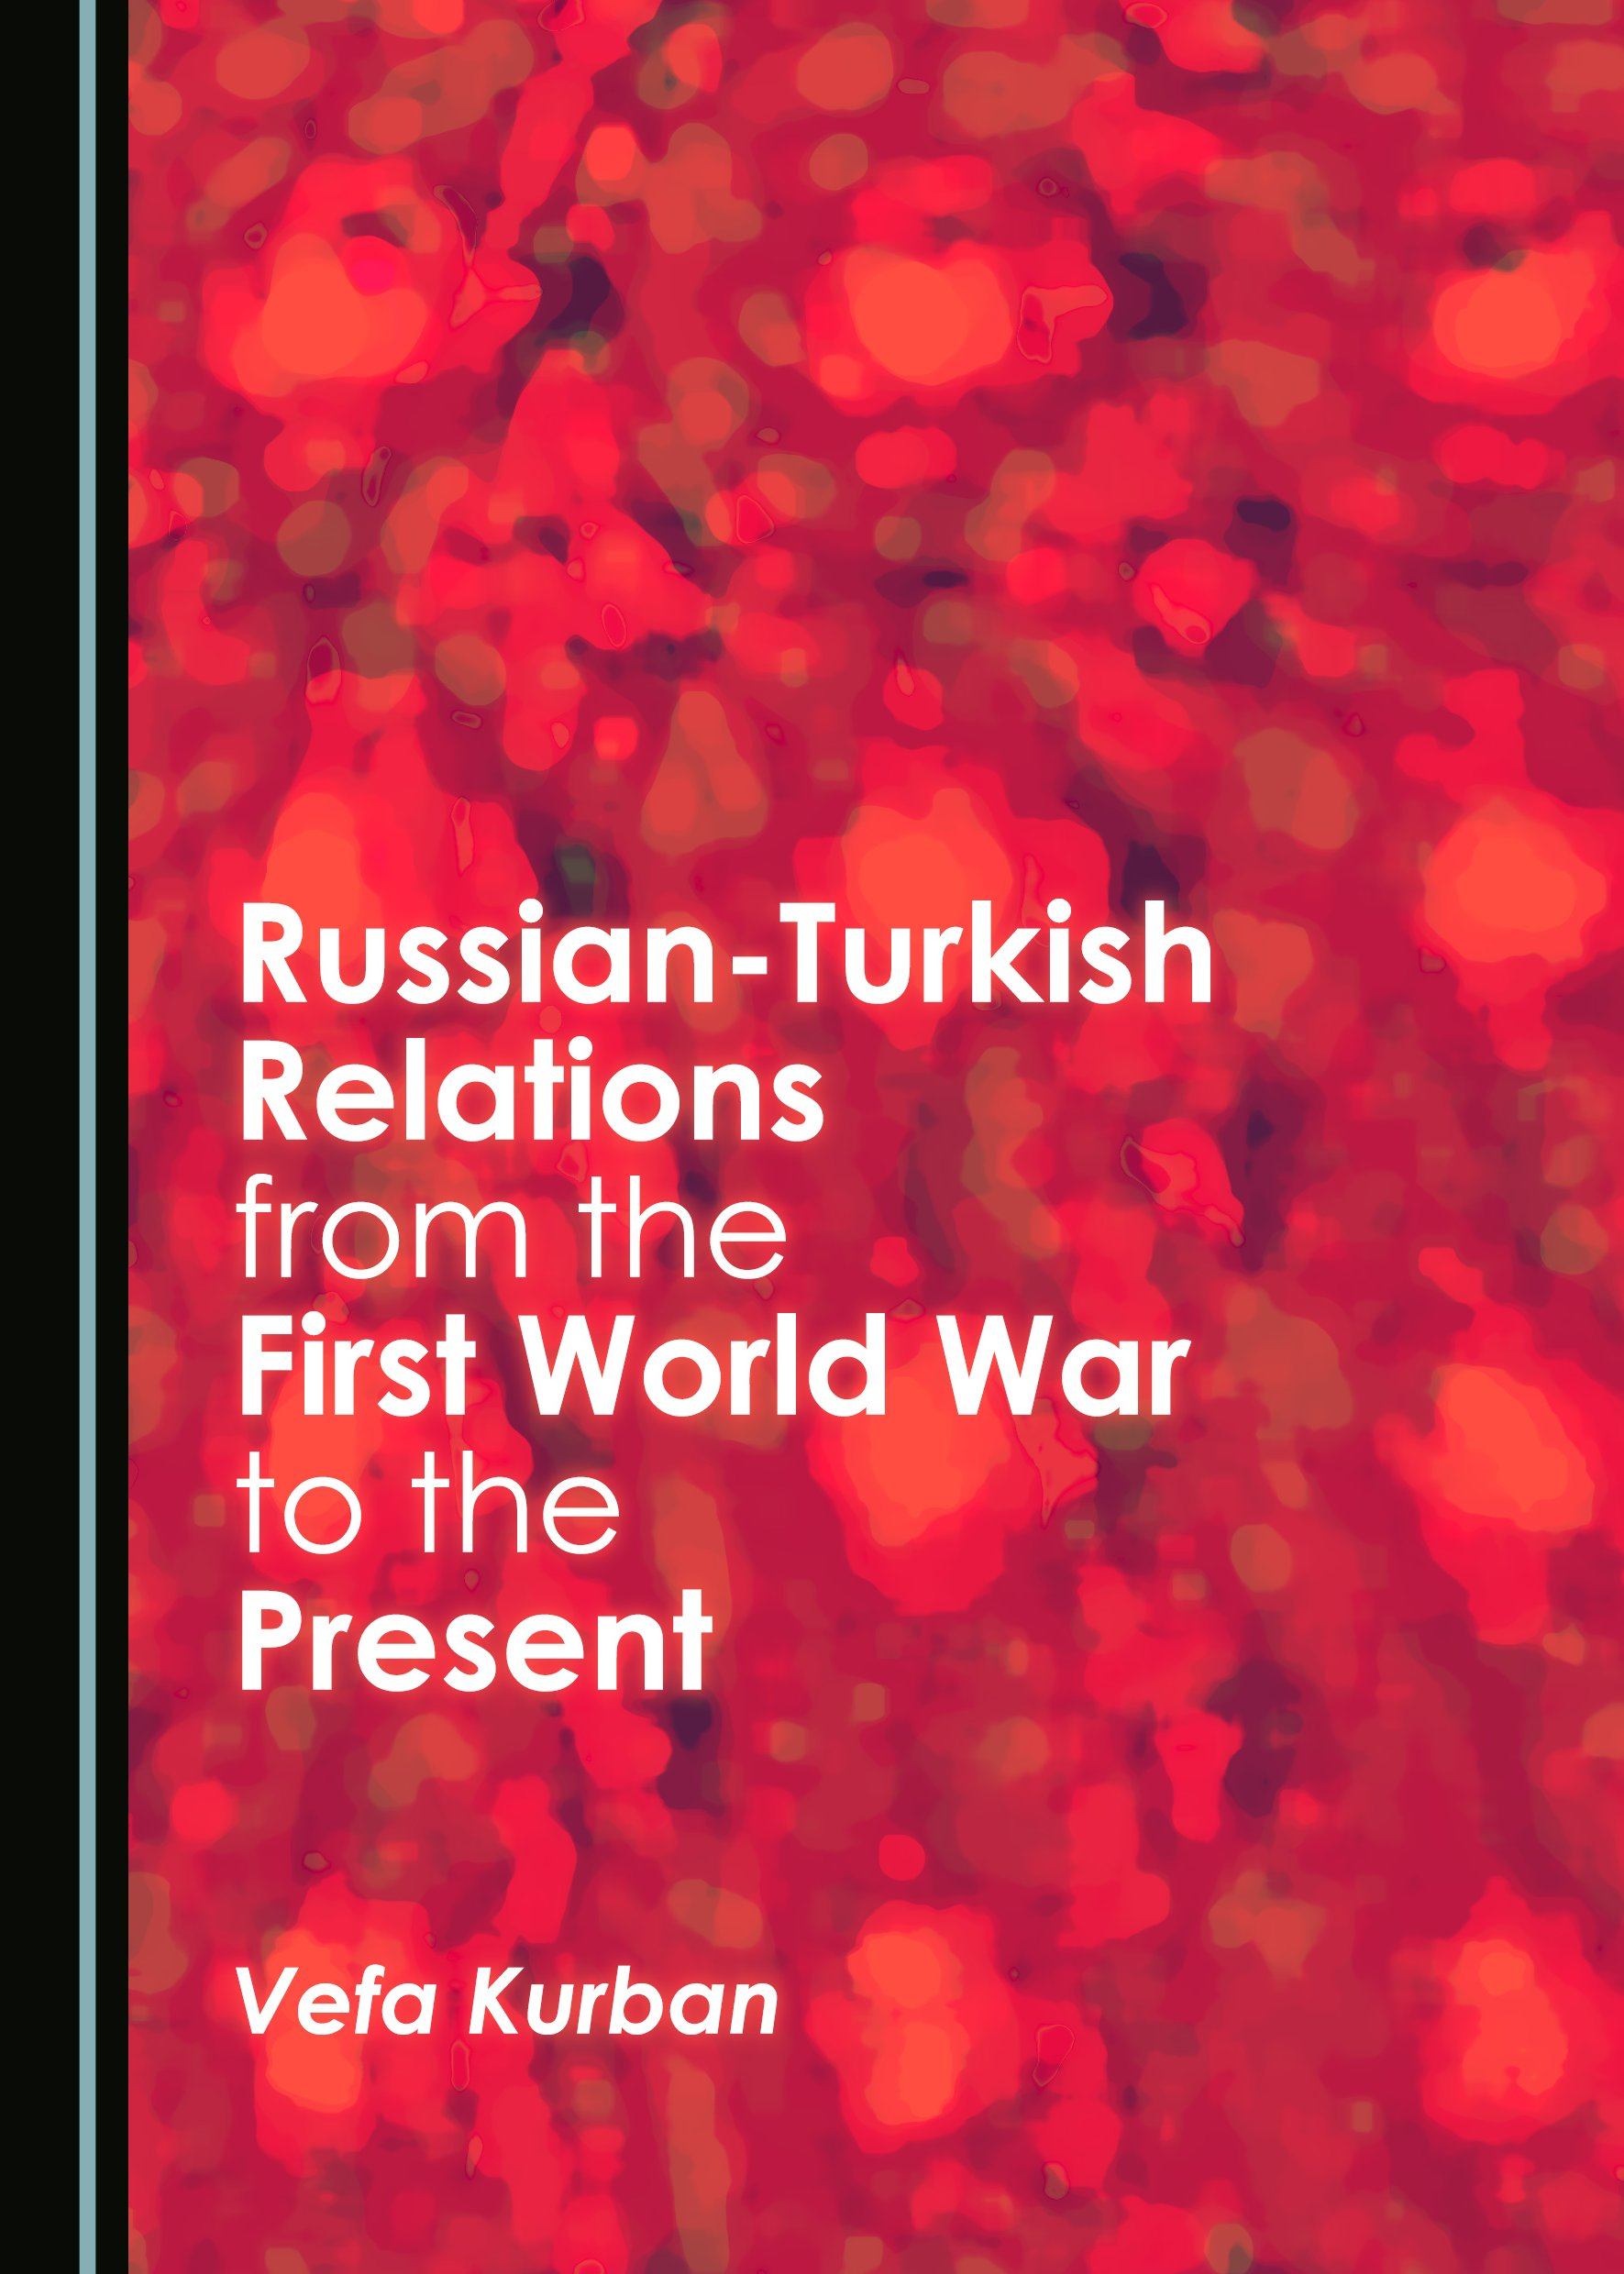 Russian-Turkish Relations from the First World War to the Present